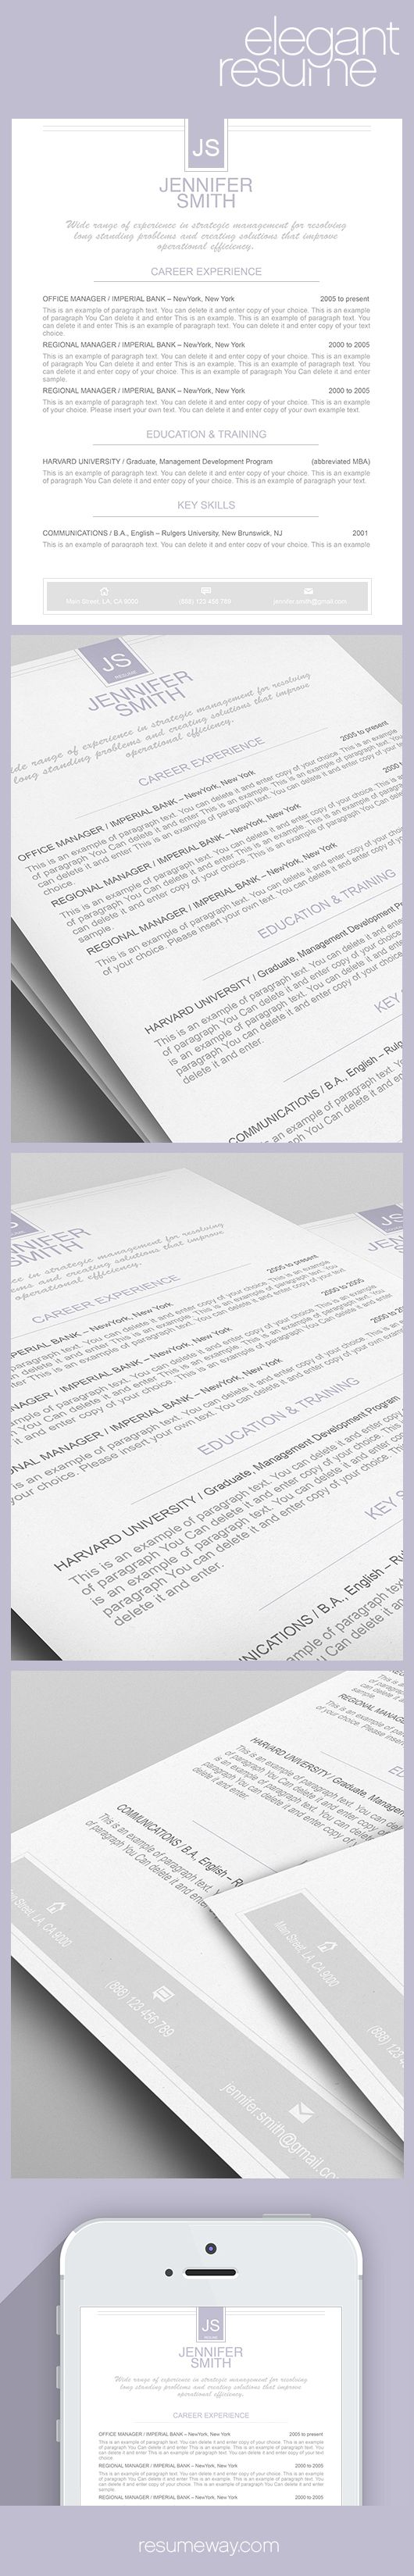 best ideas about cover letter design resume elegant resume template 110460 premium line of resume cover letter templates easy edit ms word apple pages good idea selected by